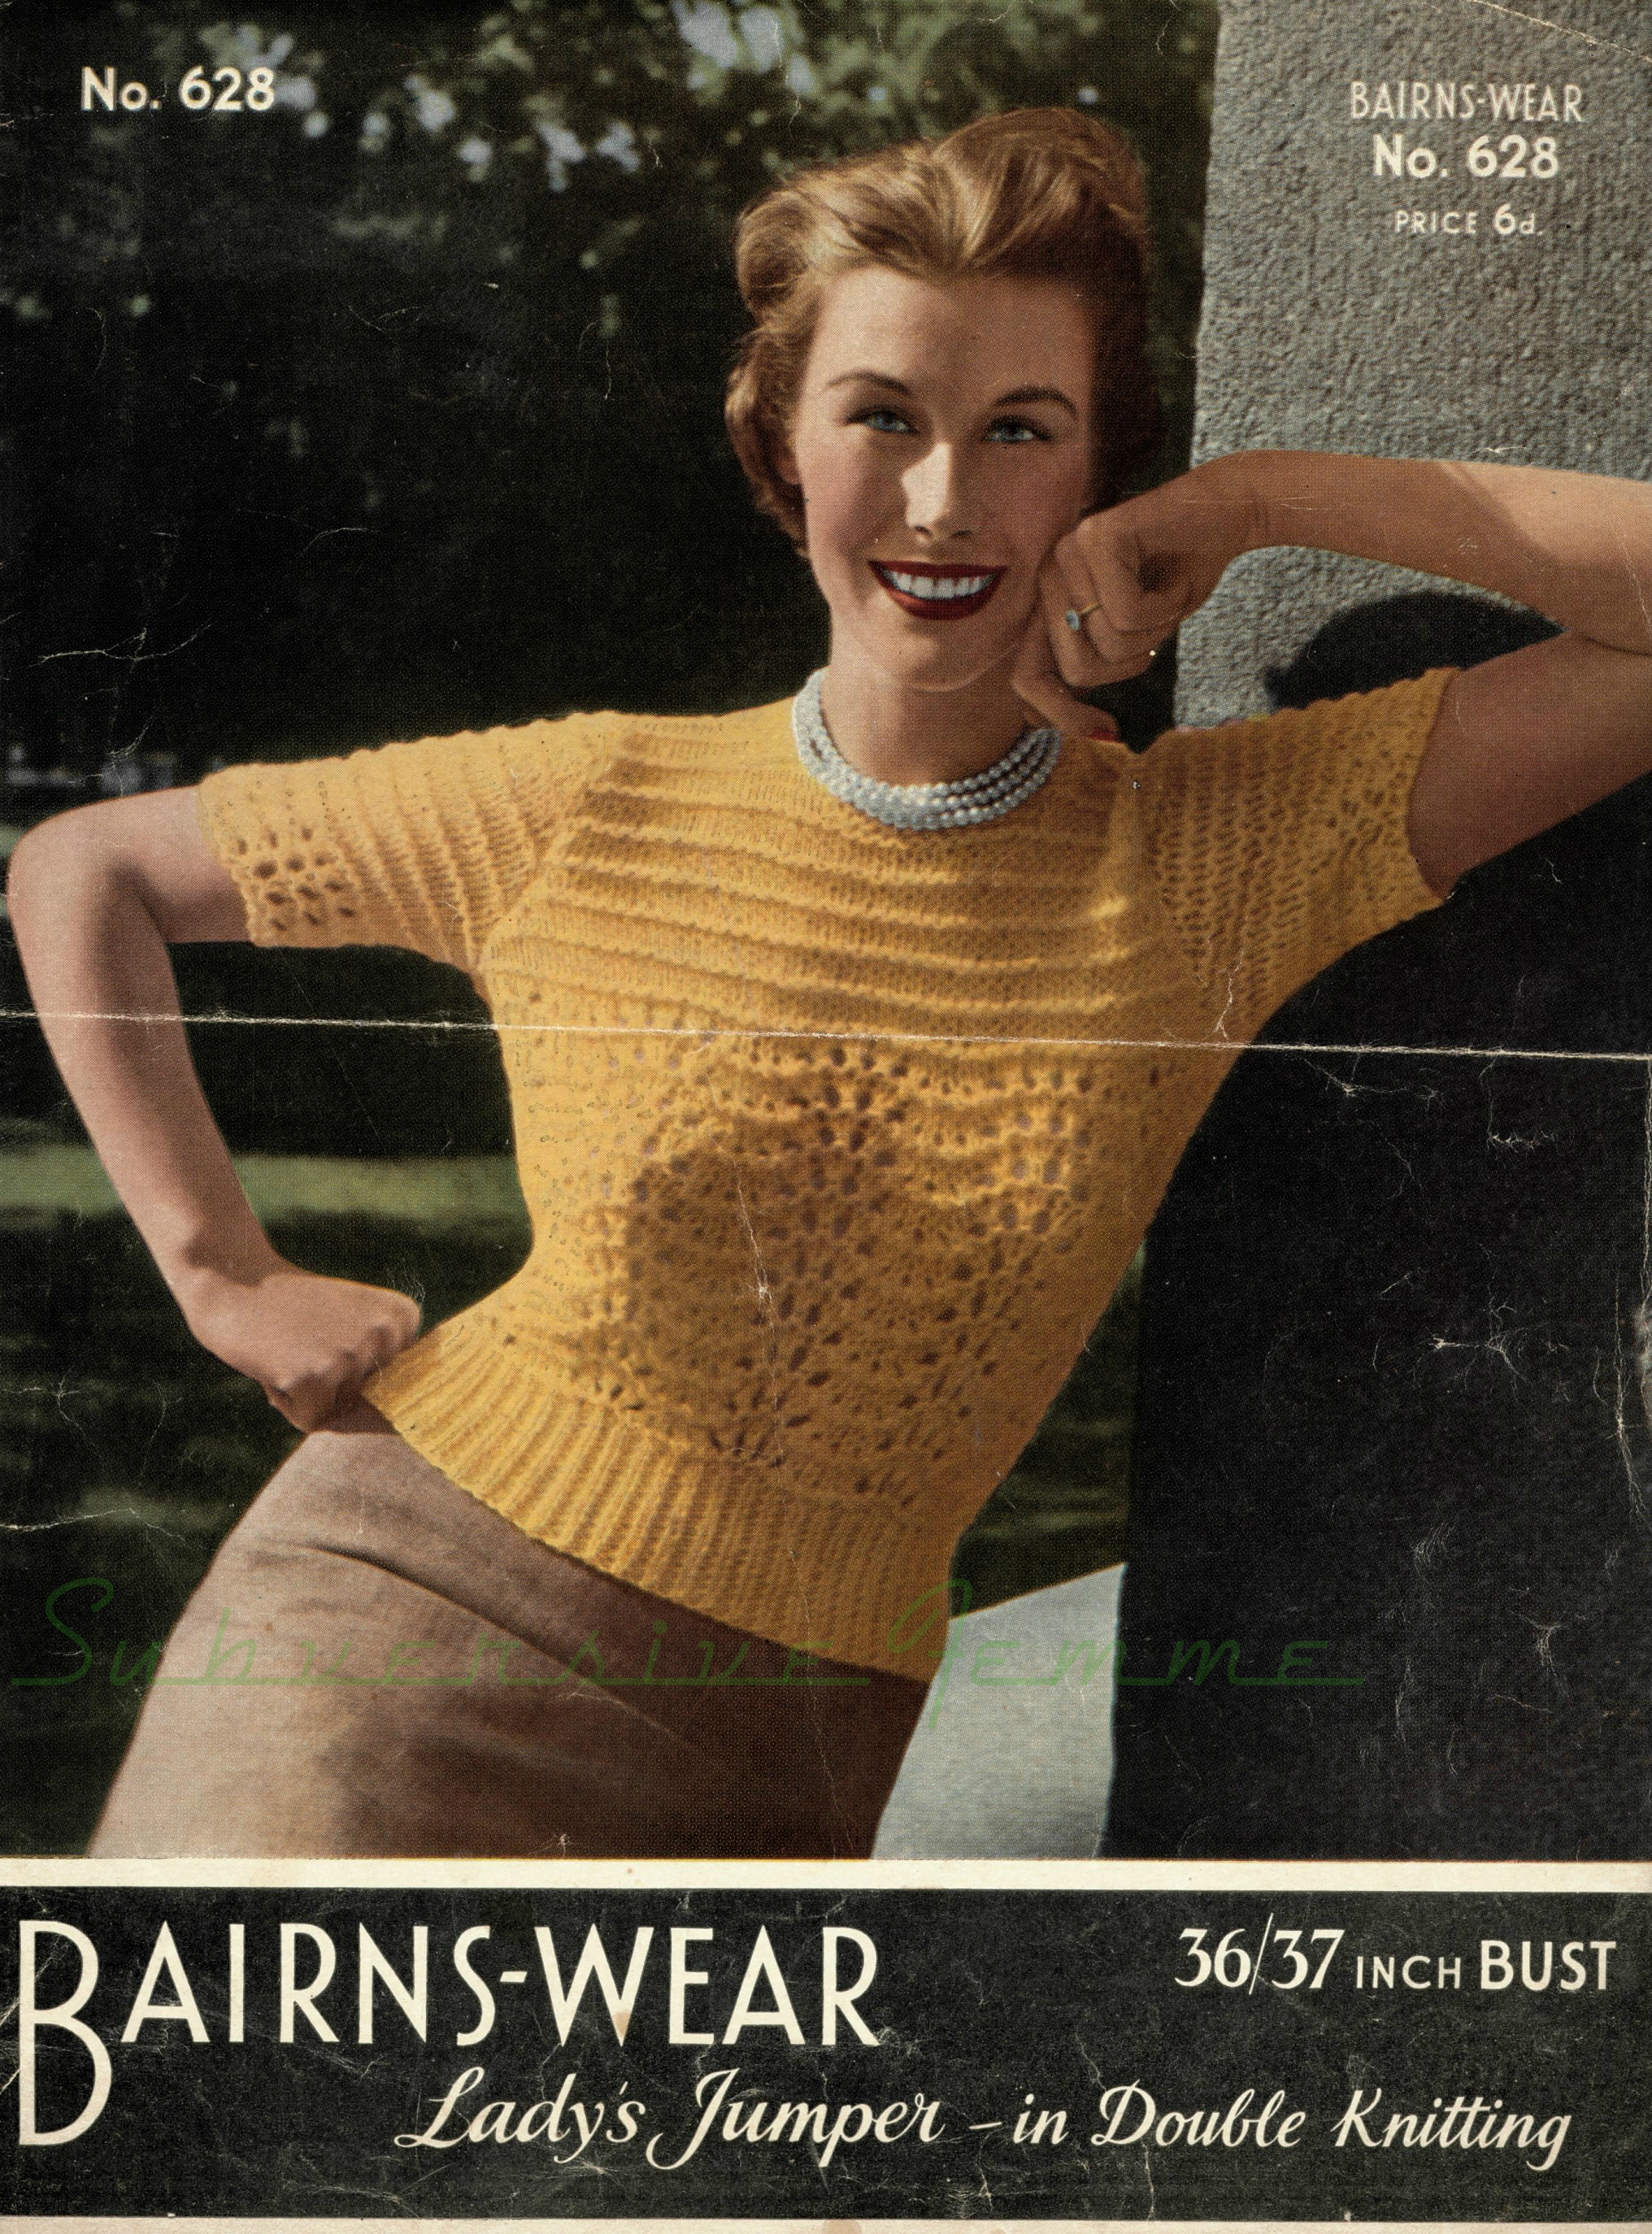 bairnswear bairns-wear 628 free vintage knitting patterns 1940s 1950s sweater